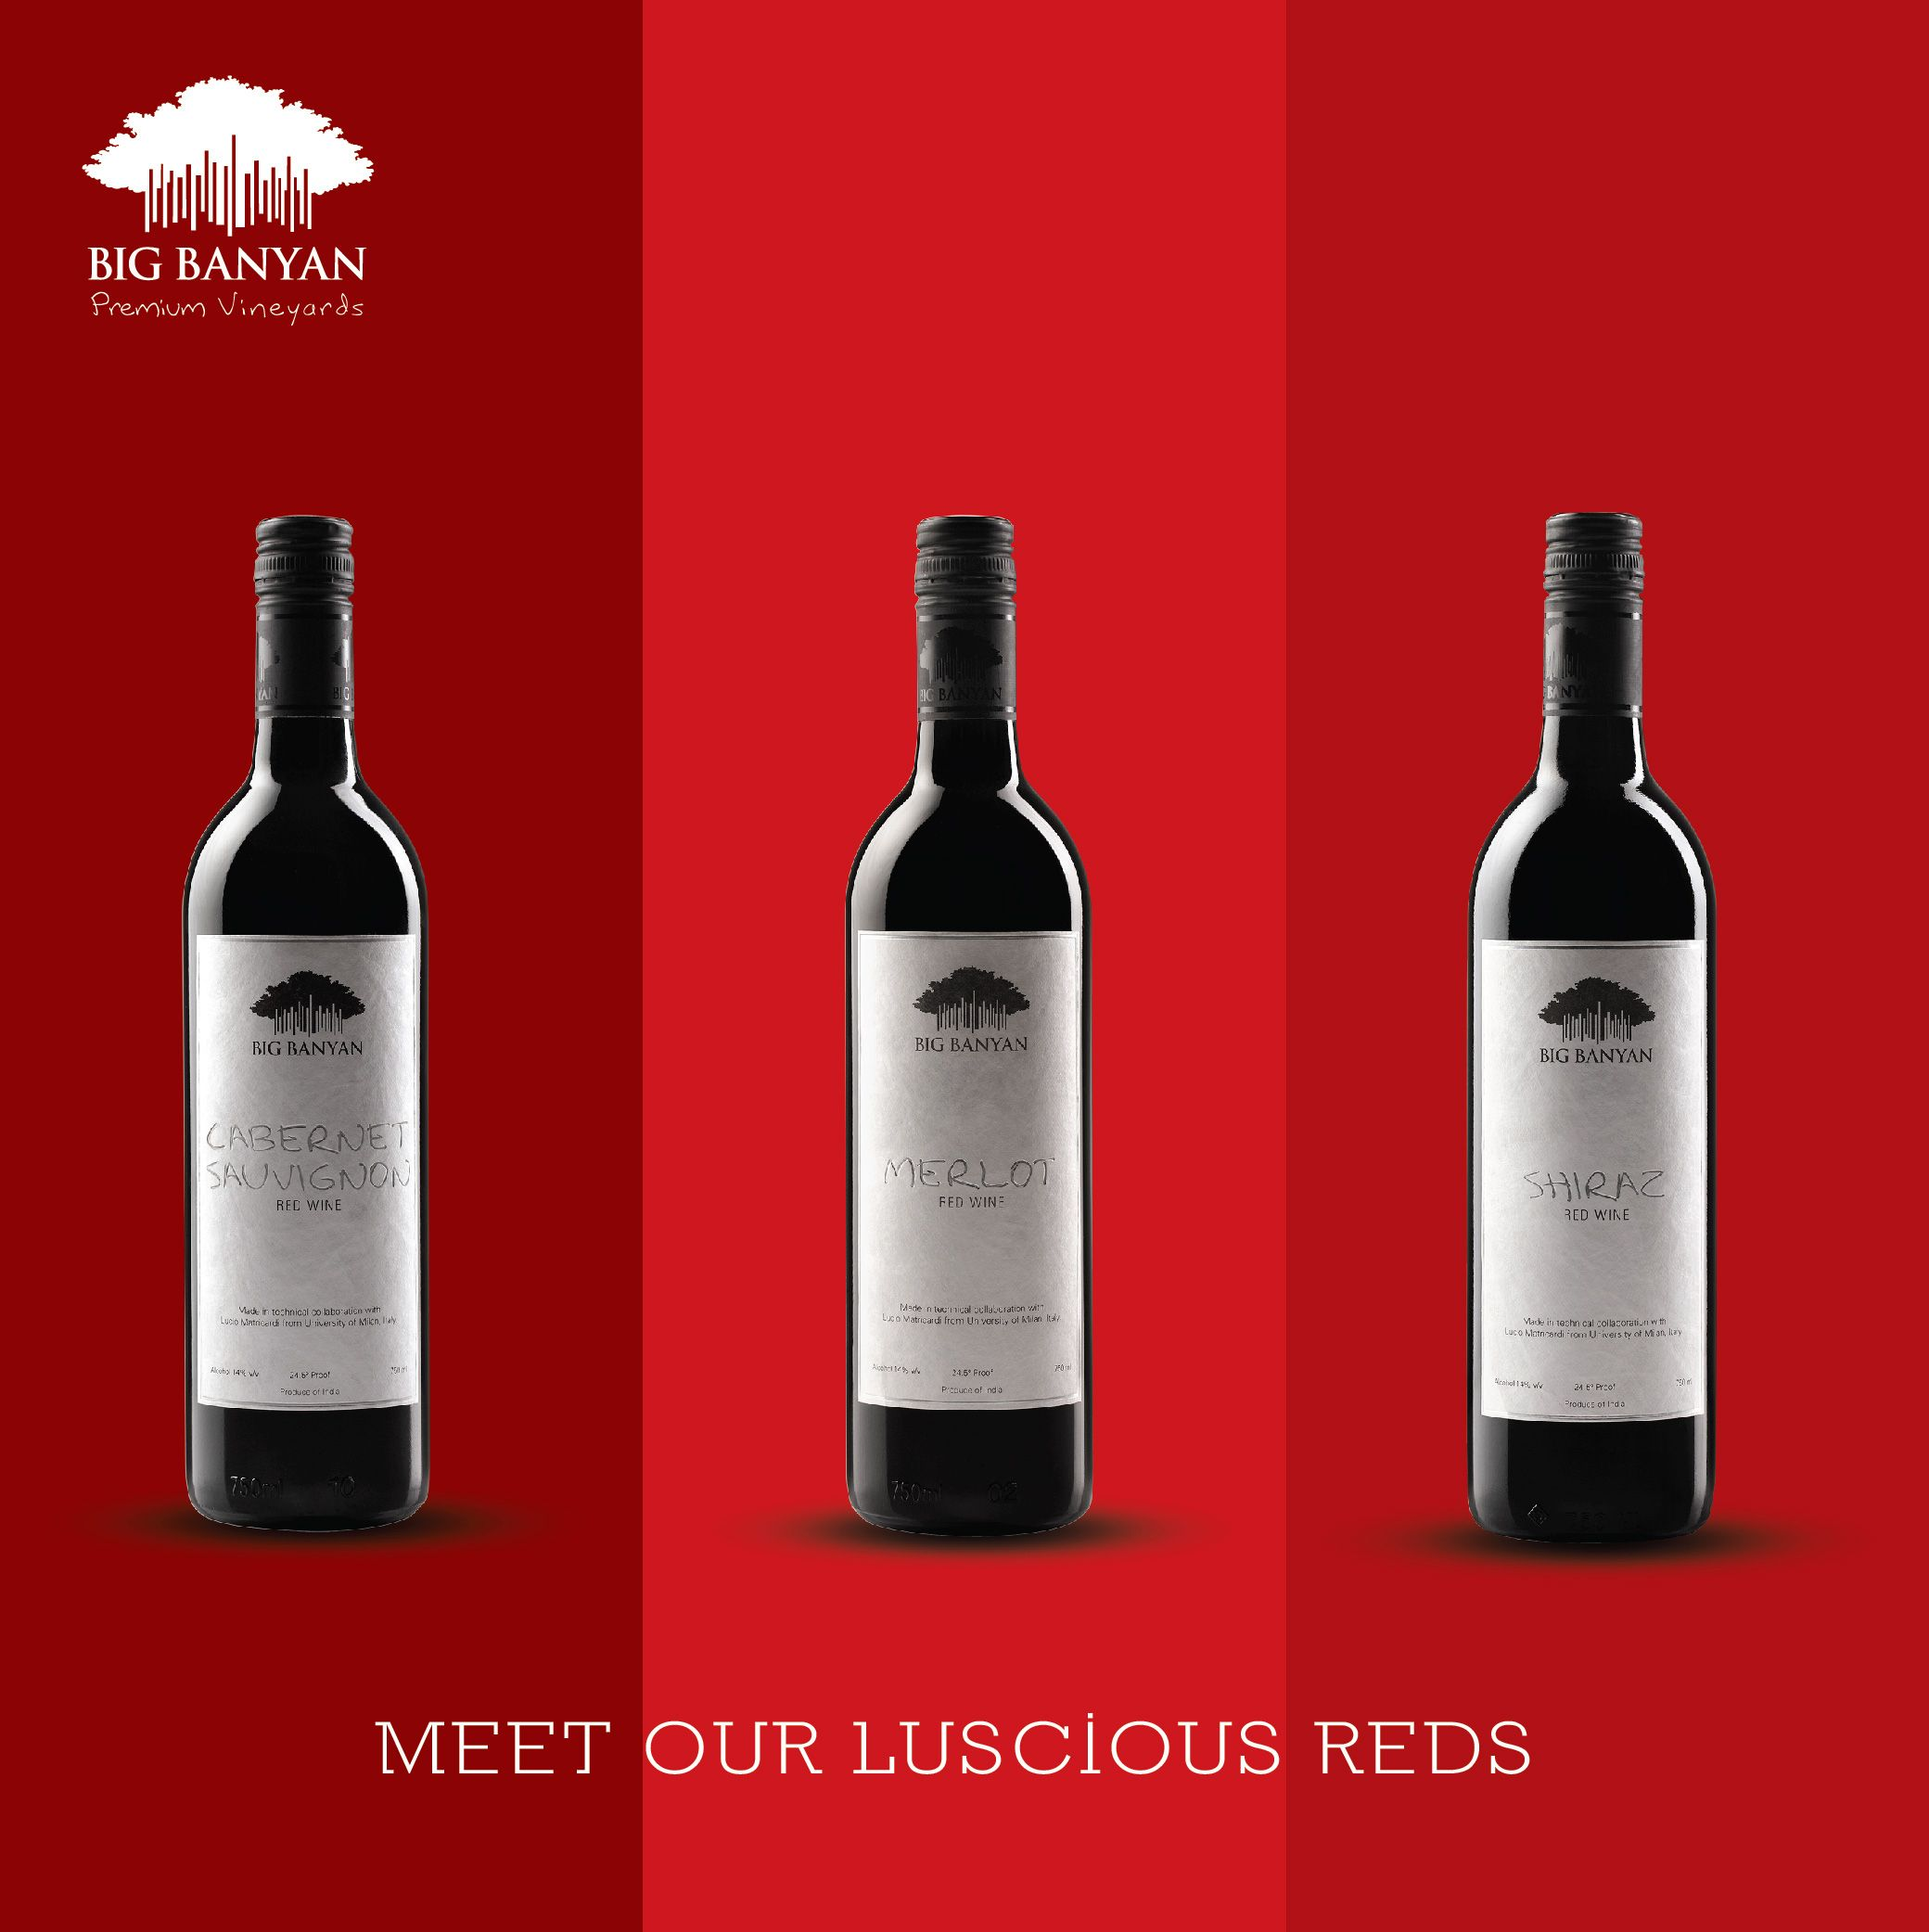 Our Three Red Include A Cabernet Sauvignon A Merlot And A Shiraz But Tell Us First What Do You Like Redorwhite Wine Desserts Wine Bottle Alcoholic Drinks